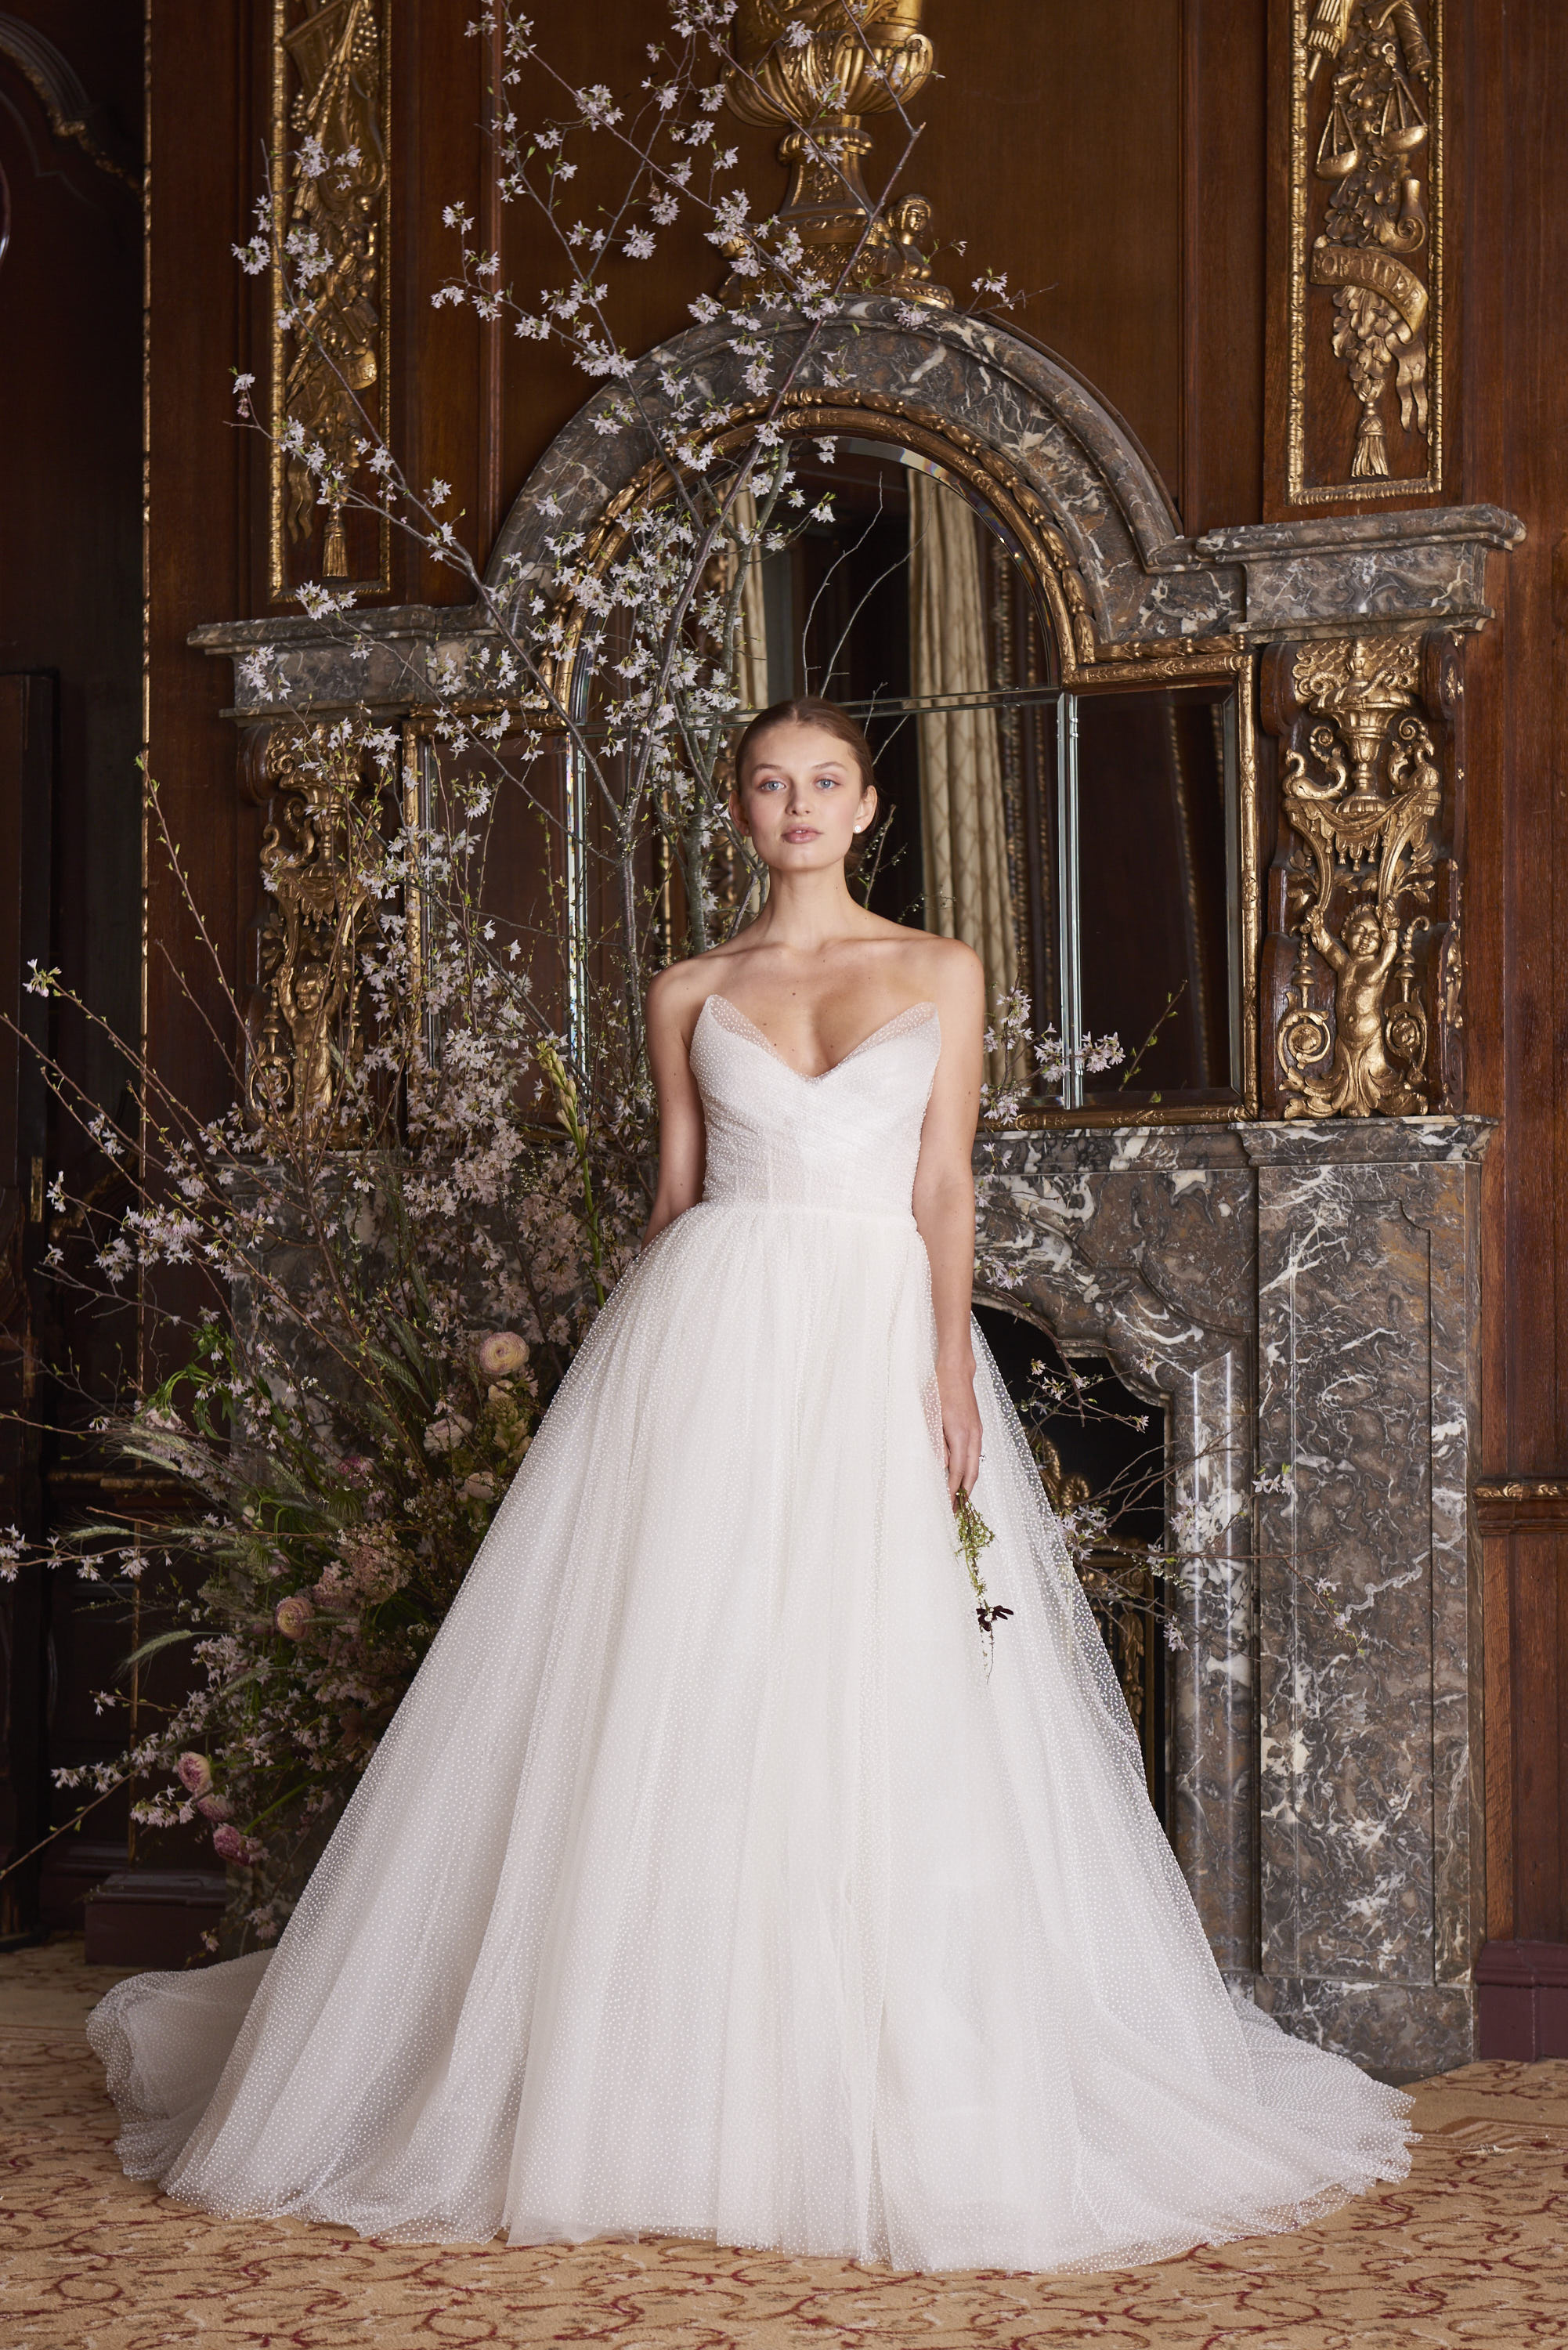 monique lhuillier wedding dress spring 2019 tulle v-neck